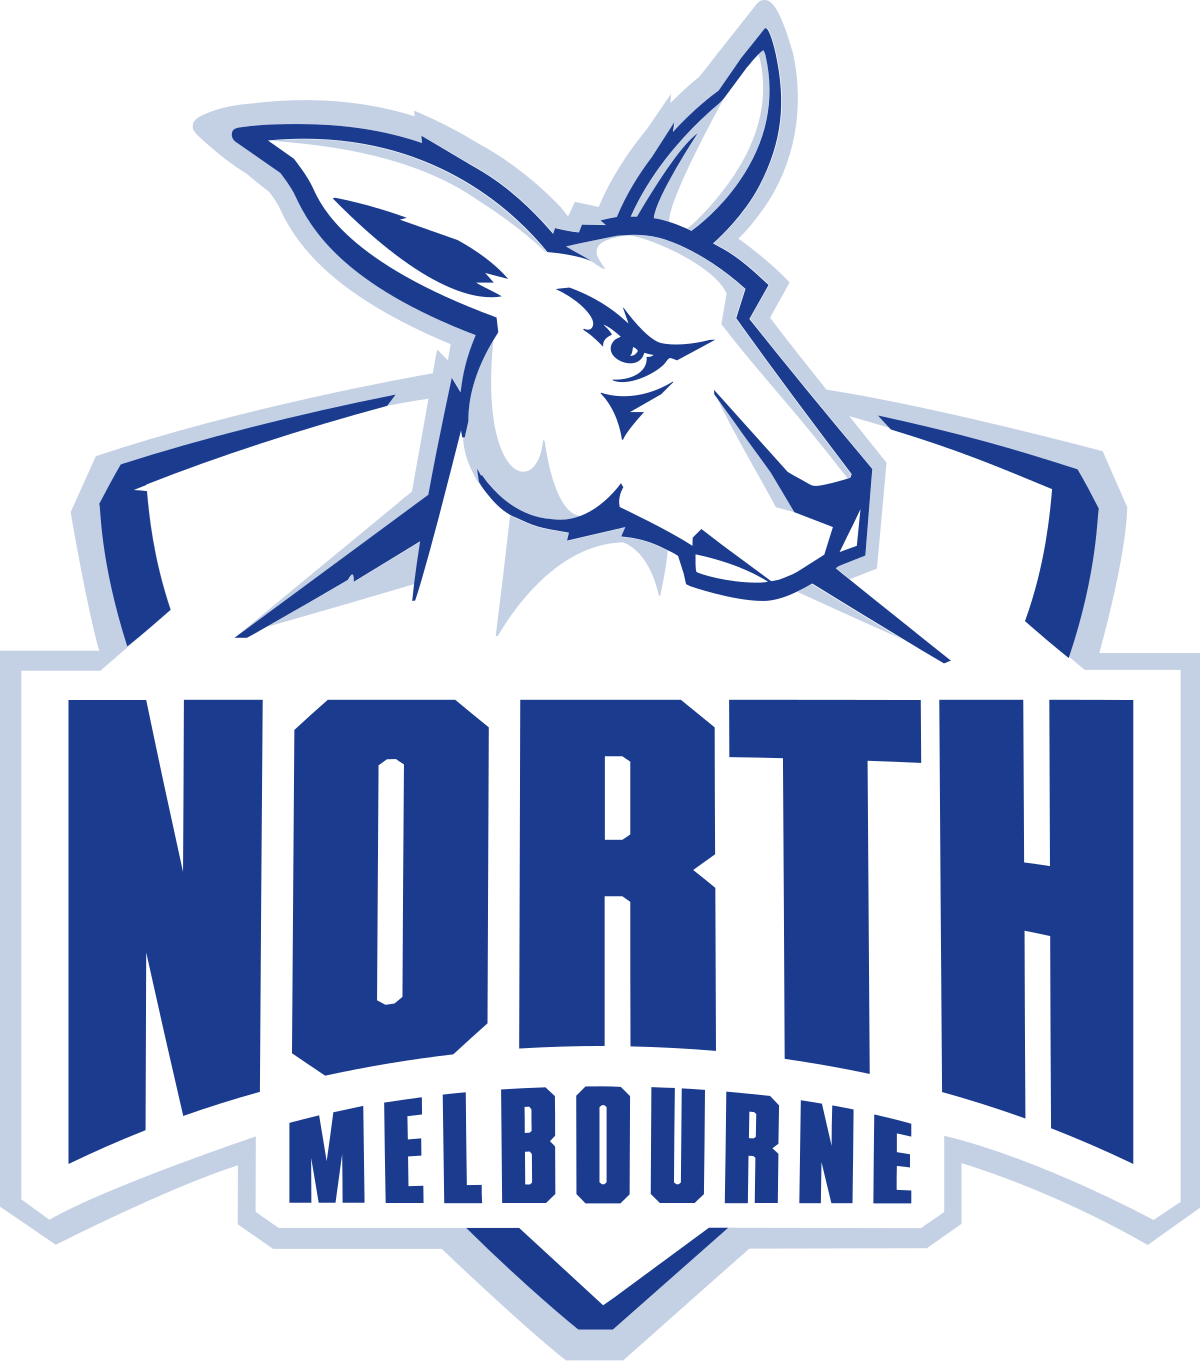 Ground clipart football ground. North melbourne club wikipedia